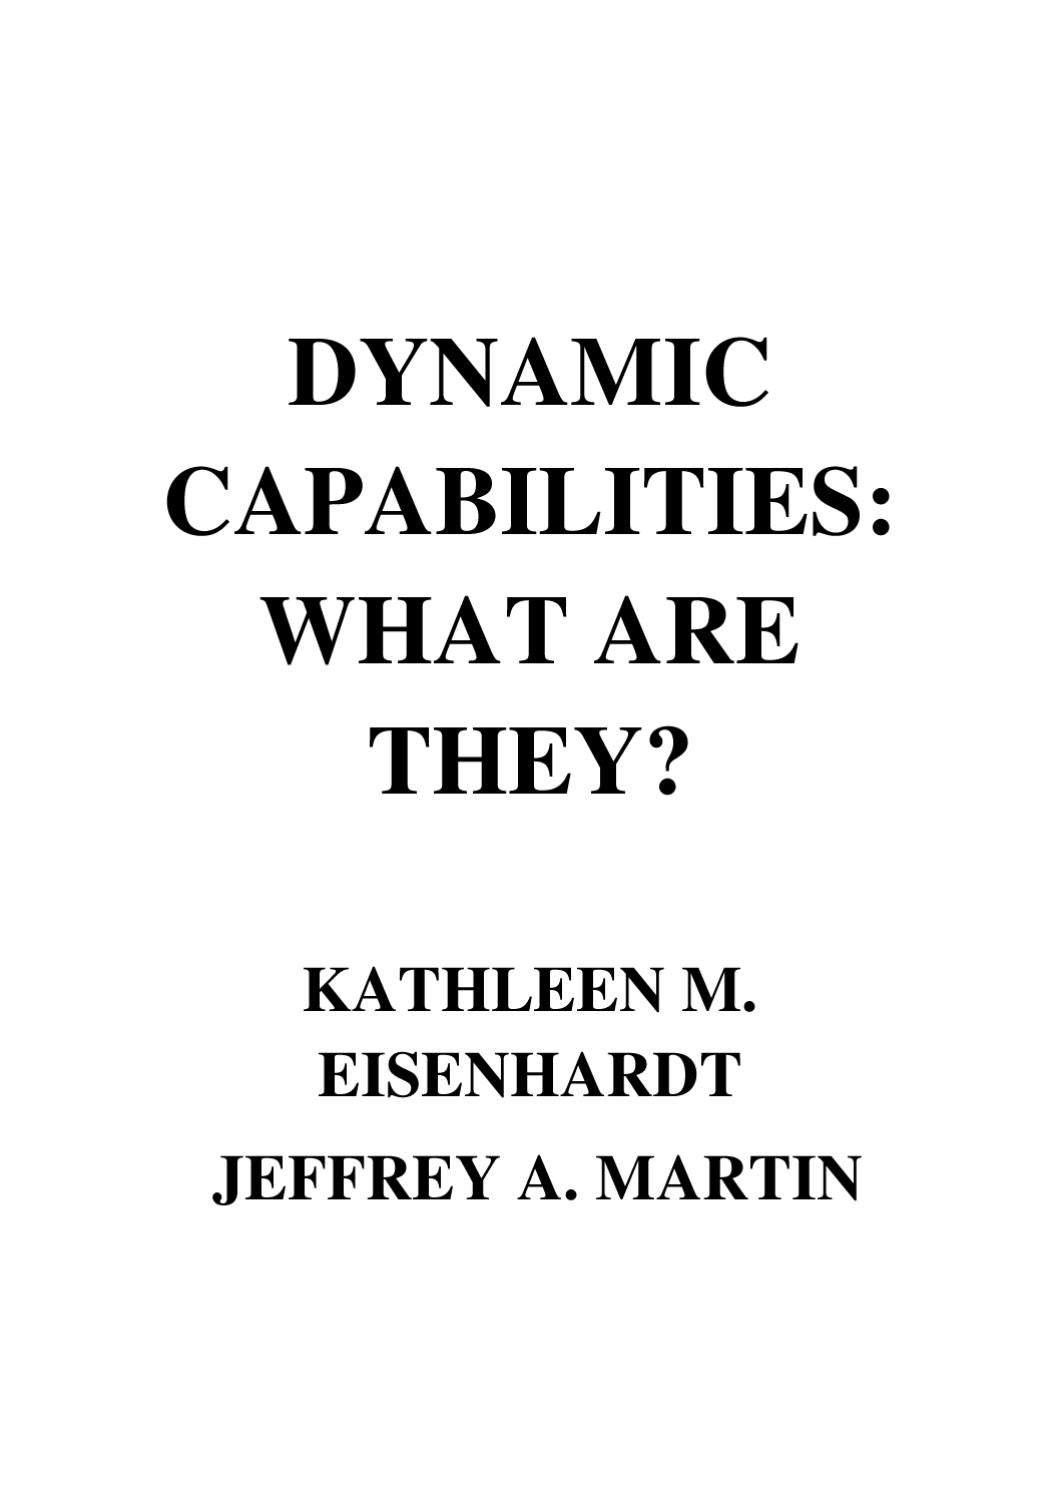 strategic capabilities darden Brief discussion of resources and capabilities, their importance, and their role in the creation of competitive advantage.